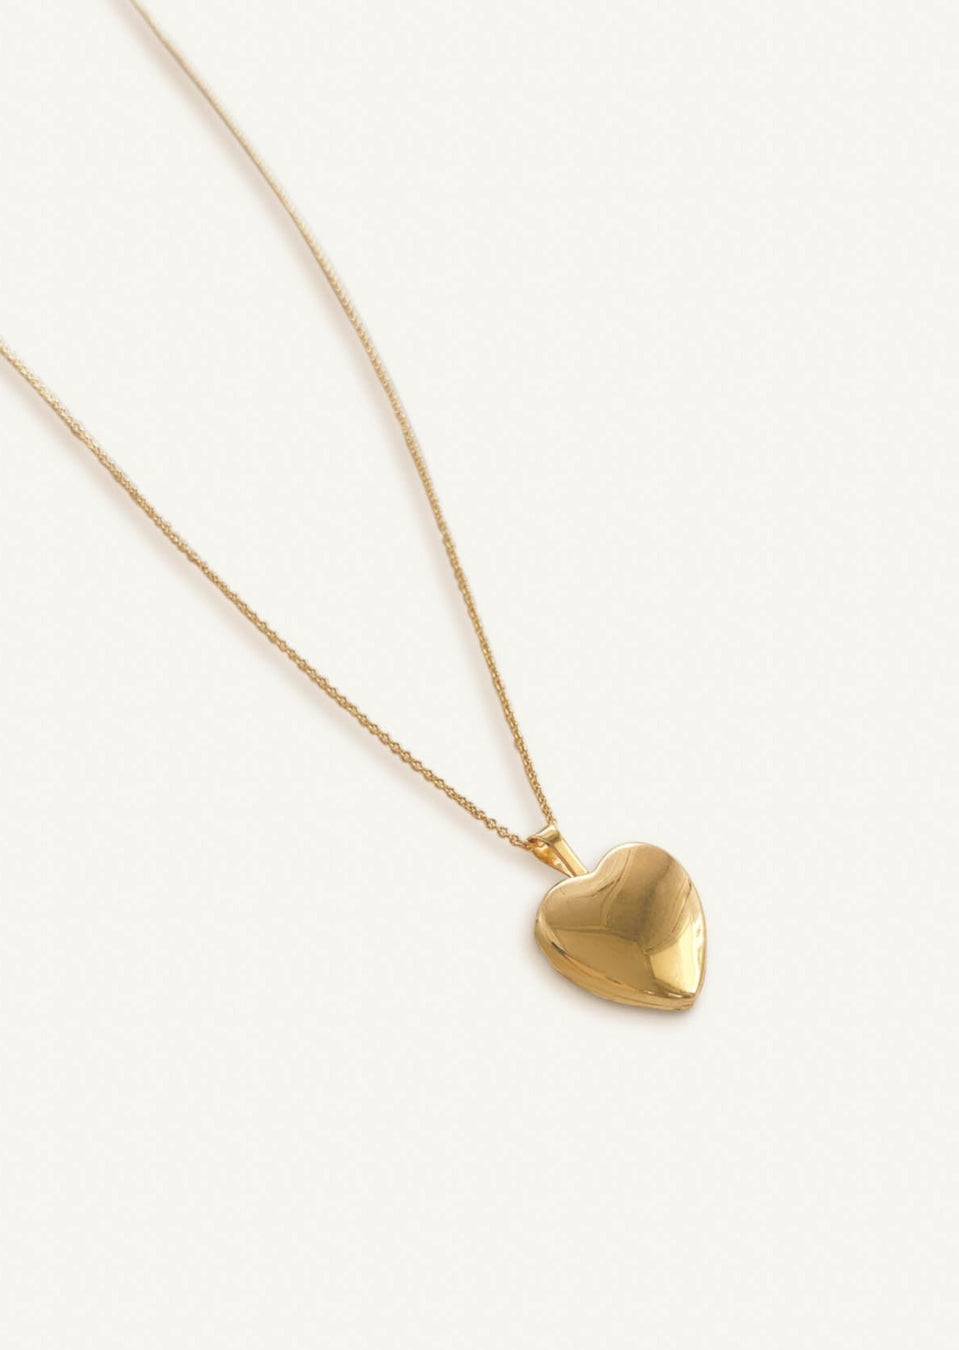 Maison Heart Locket Necklace